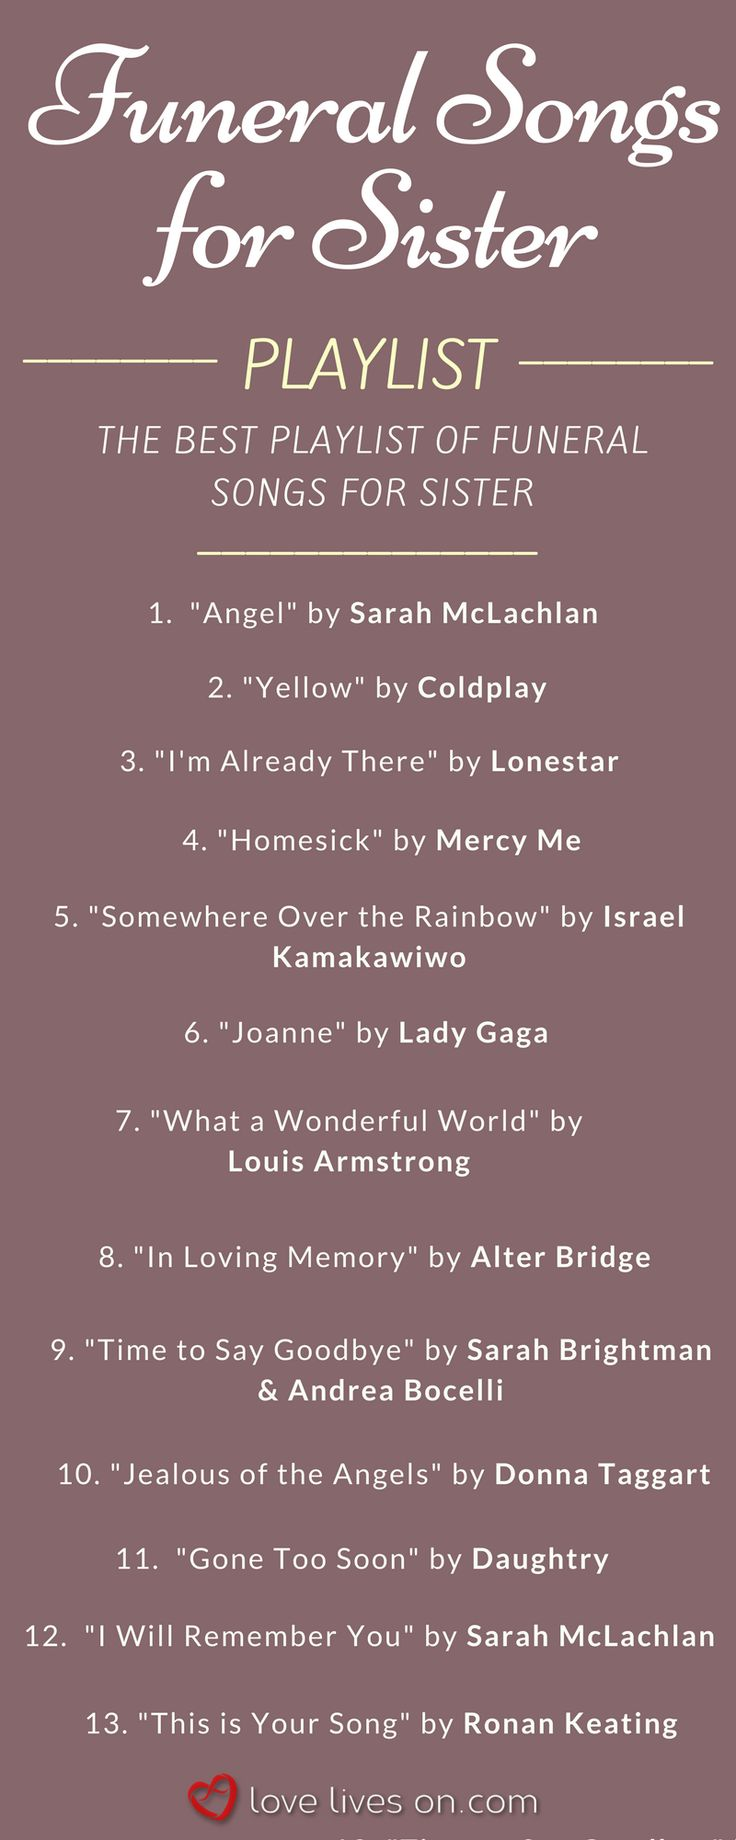 The ultimate funeral song playlist